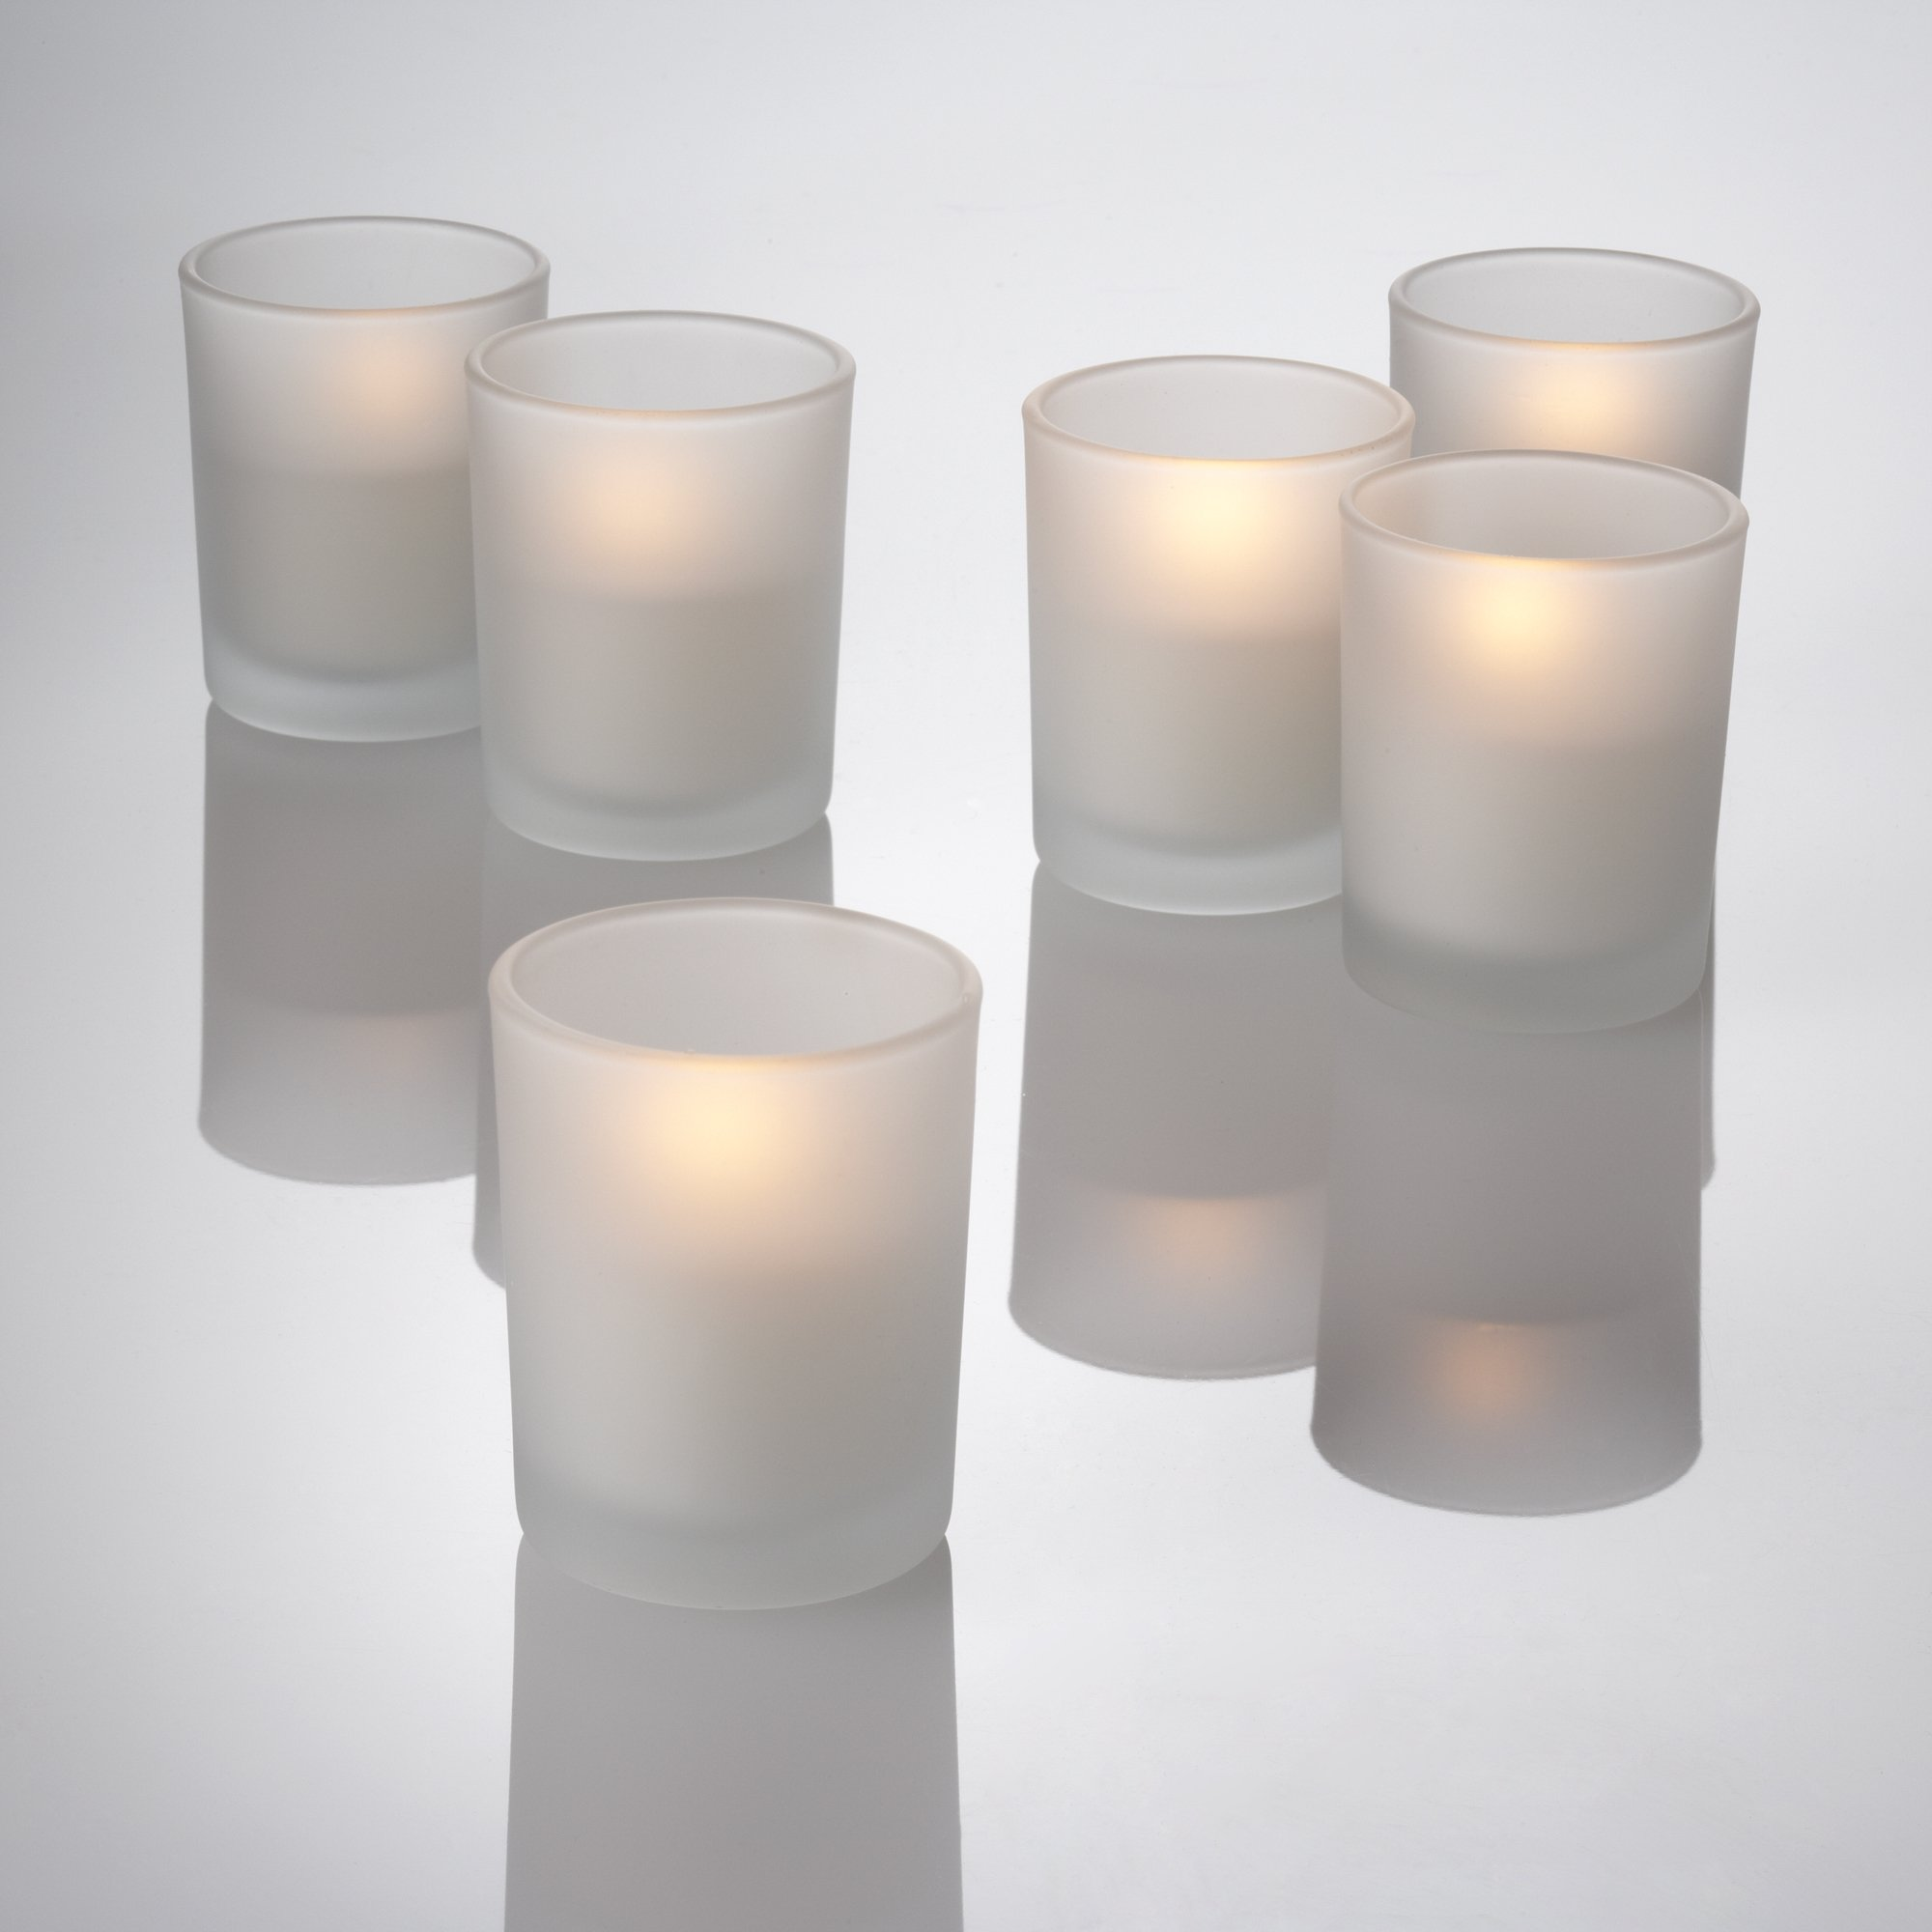 Eastland Grande Votive Holder Frosted Set of 72 by Eastland